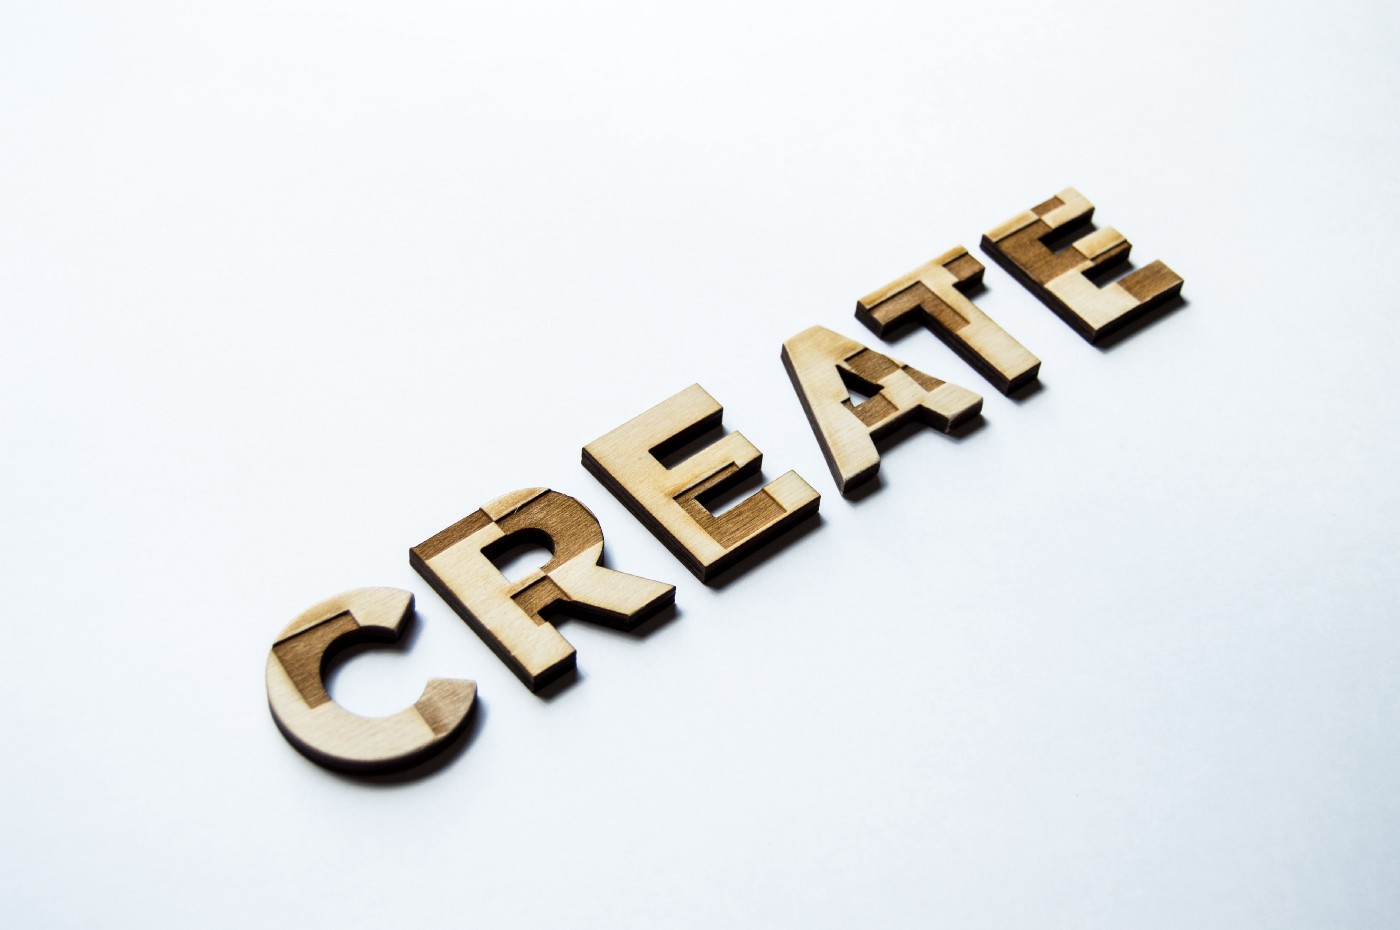 The word 'create' is spelt out in capitalised wooden letters against an off-white backdrop.